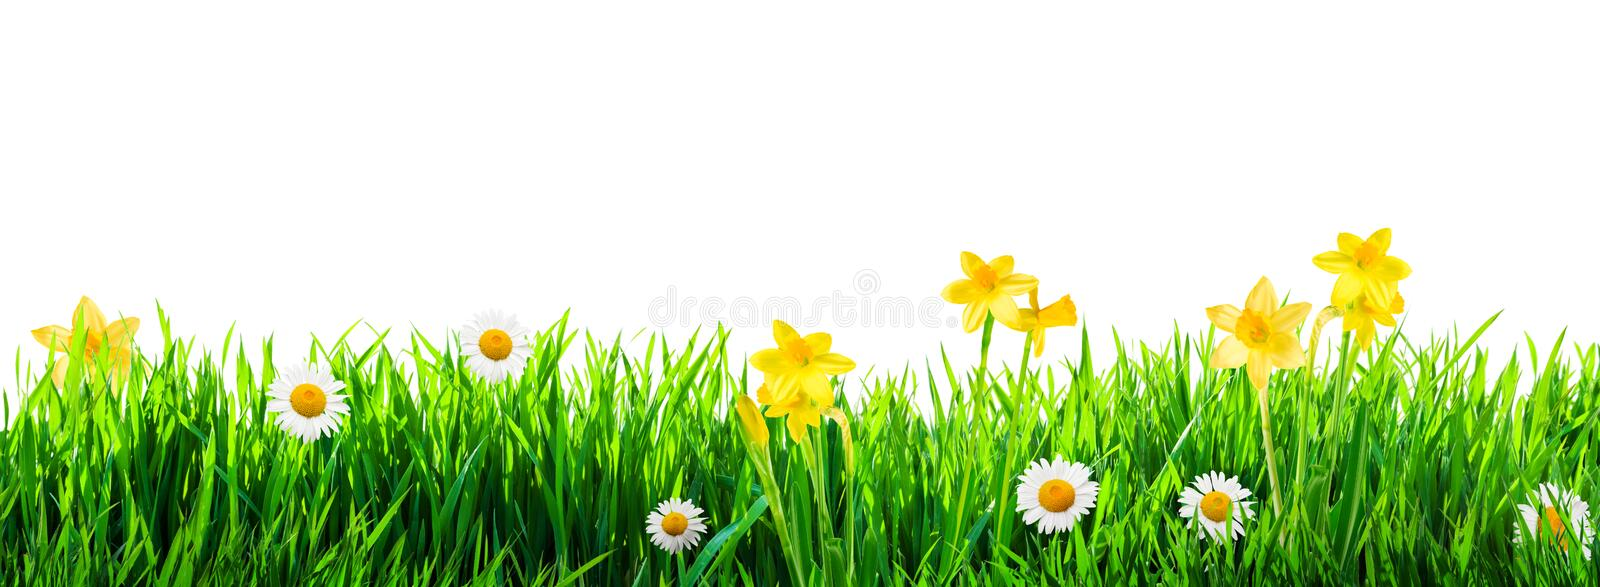 210 Grass Png Photos Free Royalty Free Stock Photos From Dreamstime